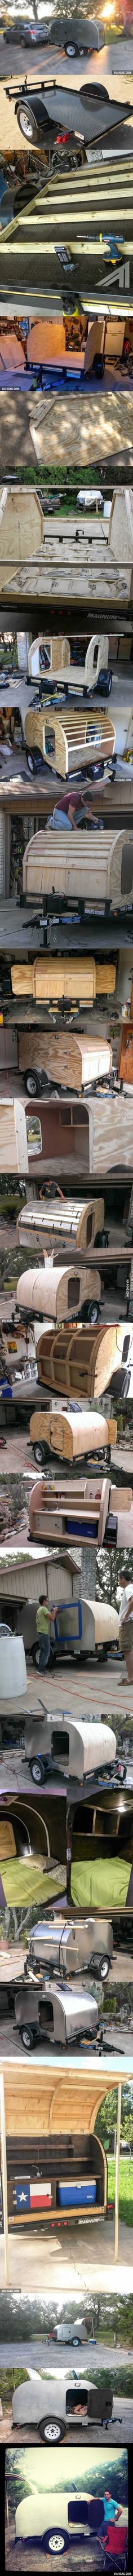 DIY Teardop Trailer